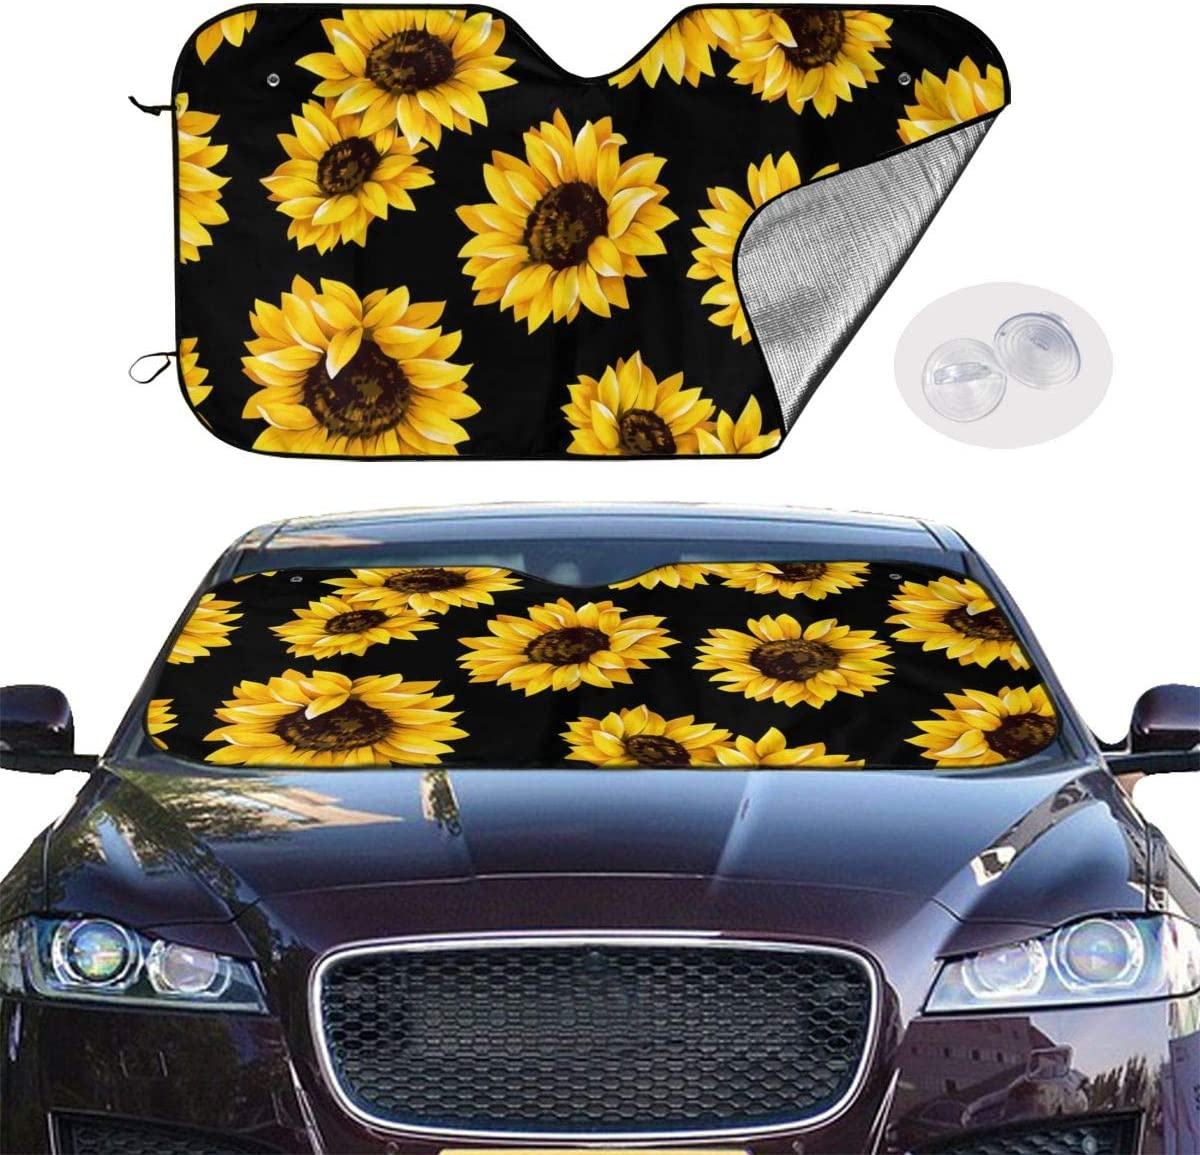 antfeagor Sunflowers Auto Windshield Sun Shade Car Front Window Sunshade-UV Protection Double Bubble Foil Jumbo Foldable Sunshade for Car Prevent Your Car from Sun Heat /& Glare Keep Vehicle Cool